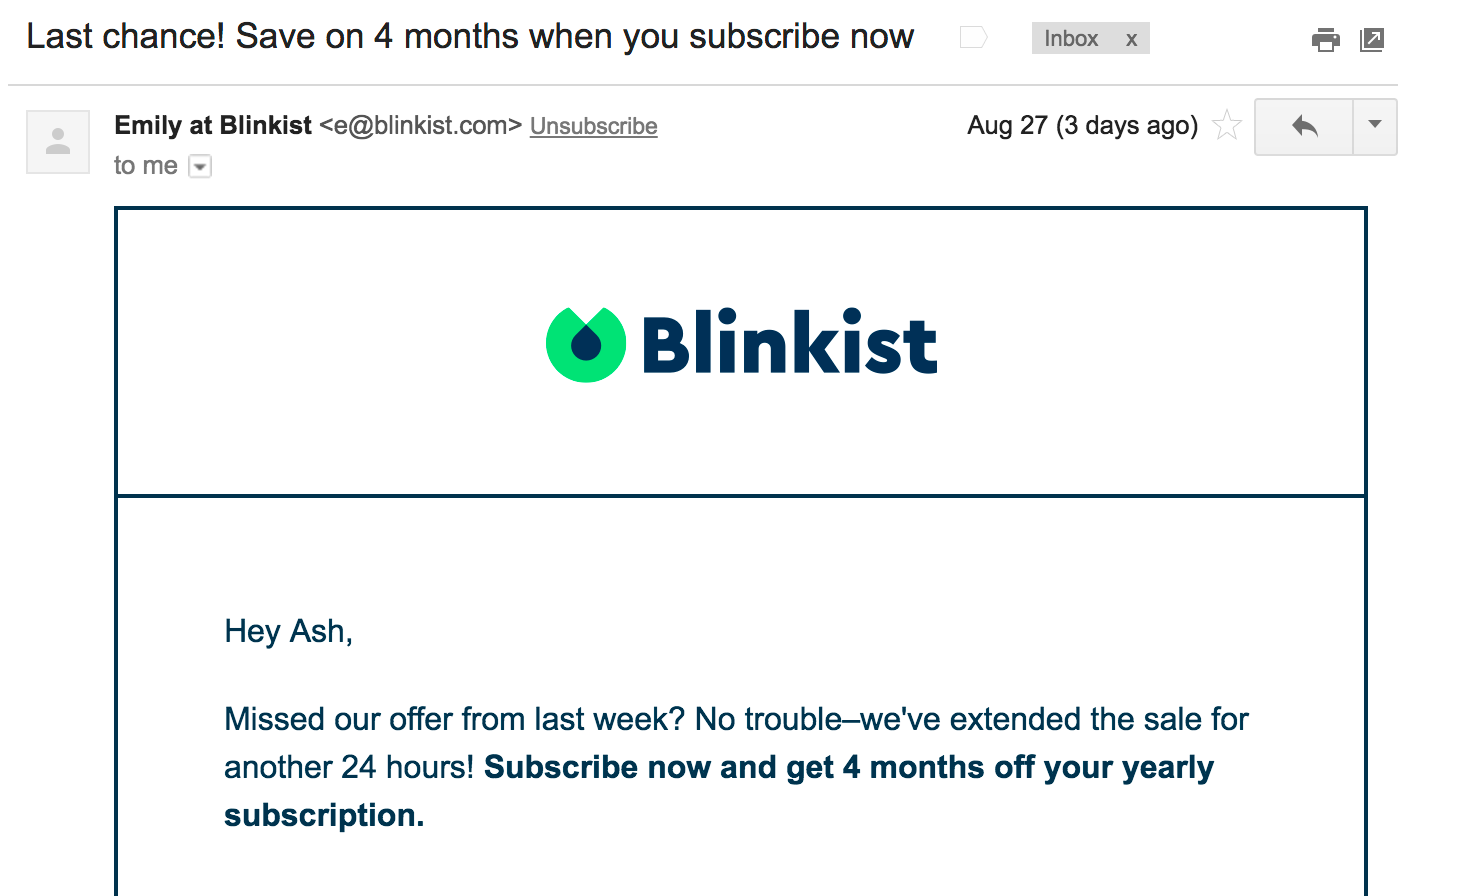 Best Email Subject Lines: Screenshot of email from Blinkist